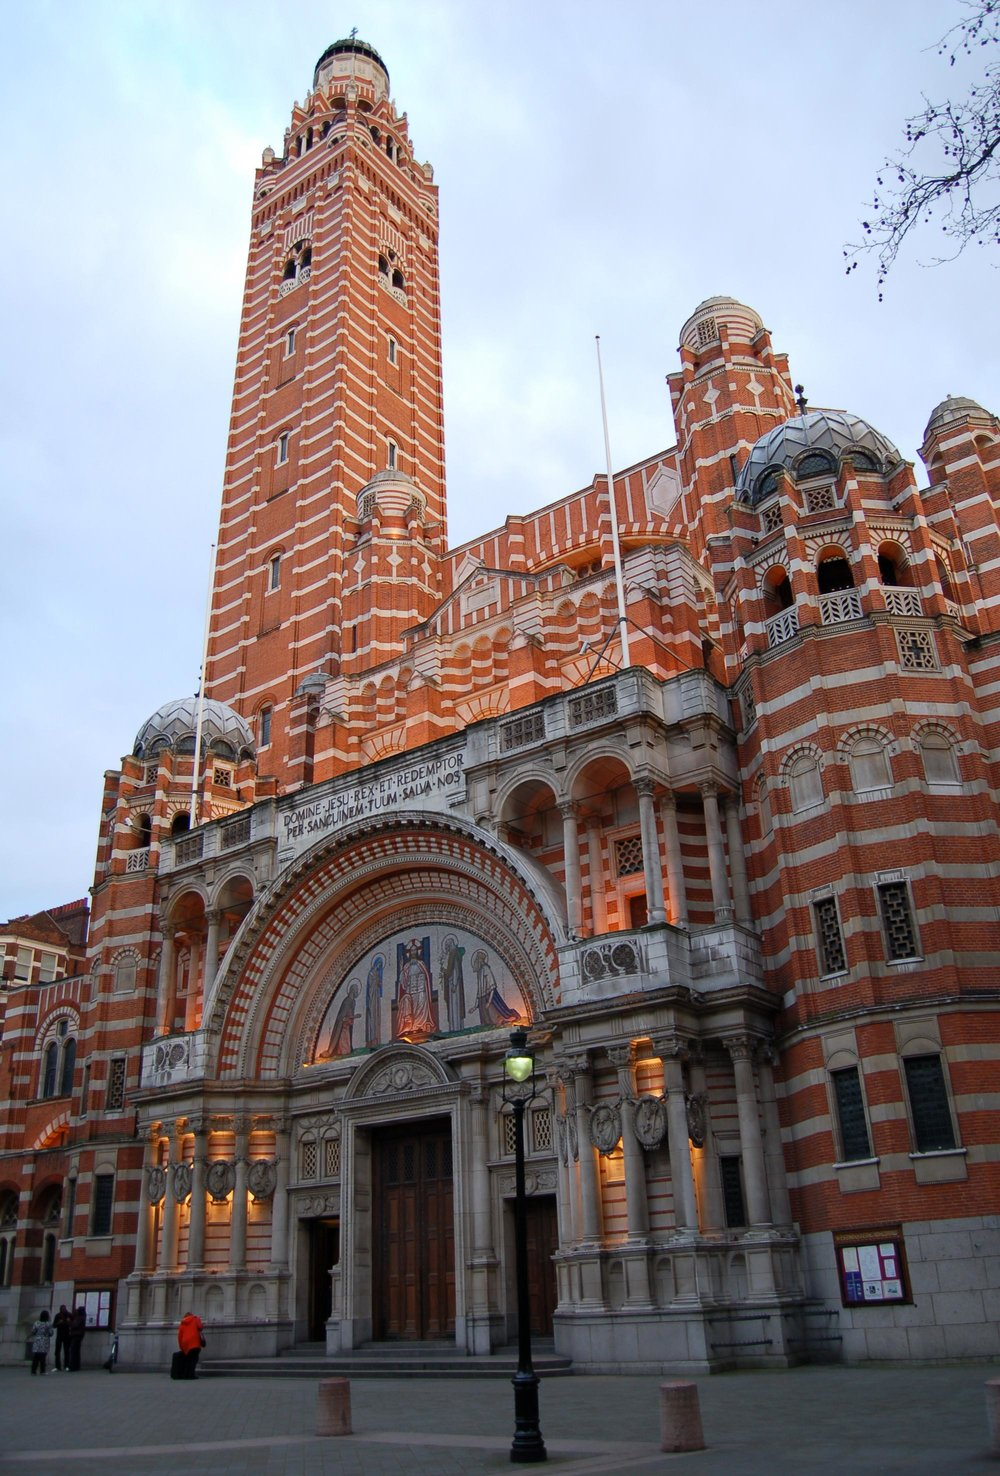 Westminster_Cathedral,_England.jpg